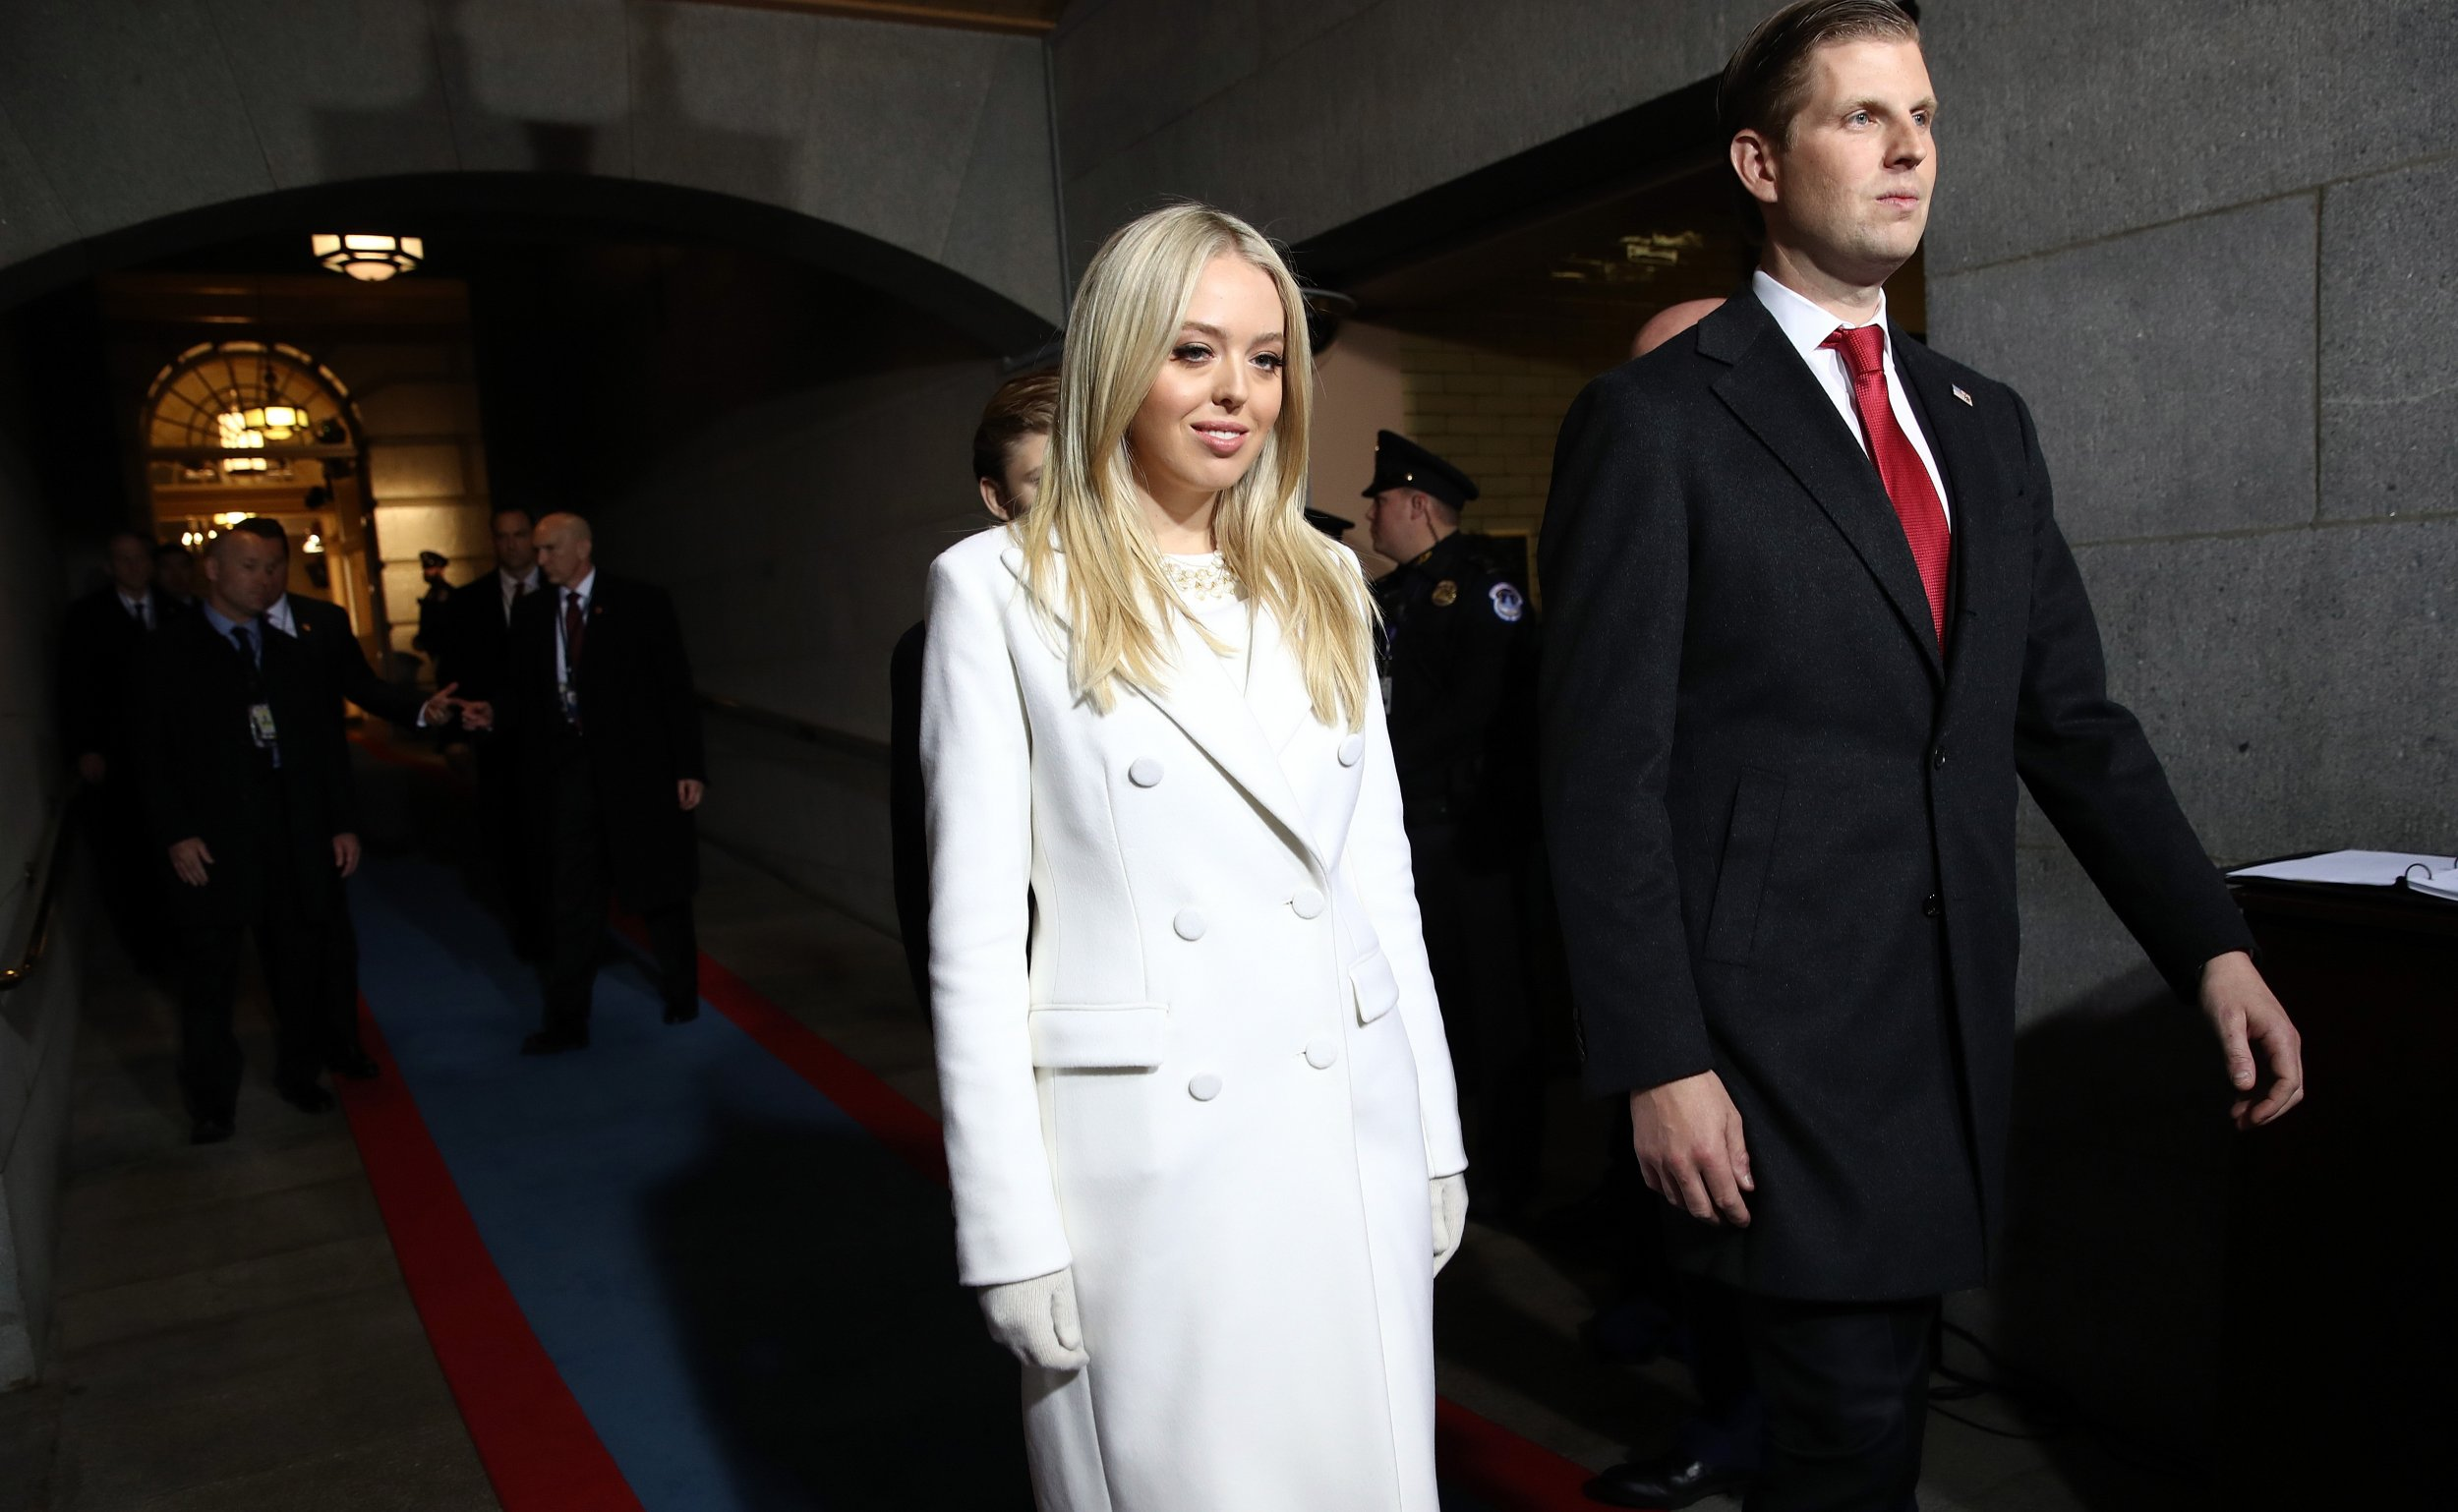 Ivanka Trump and Donald Jr. tried to 'bump' Tiffany out of her inheritance, according to newly released recordings